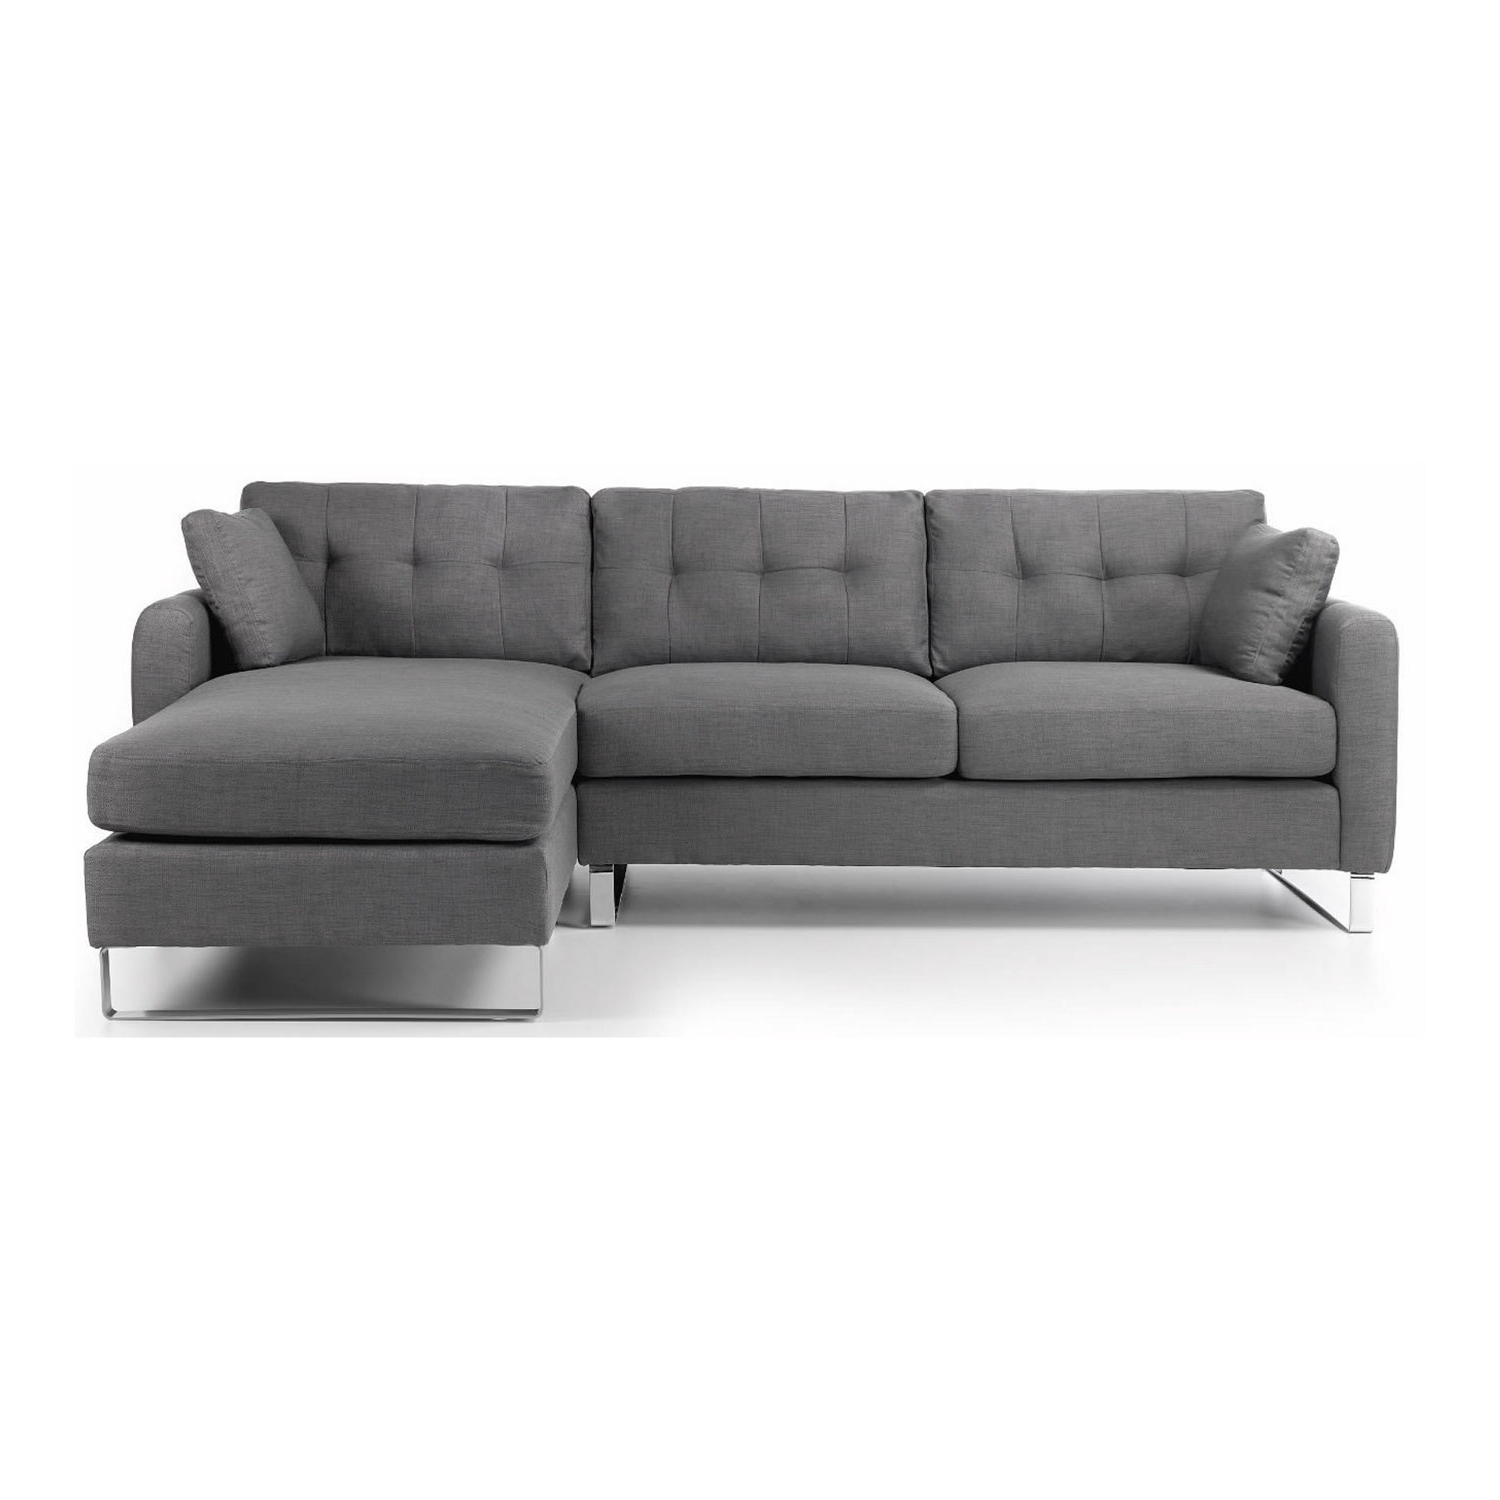 Most Current Chaise Sofa Beds Pertaining To Ares Corner Chaise Sofa – Next Day Delivery Ares Corner Chaise Sofa (View 5 of 15)